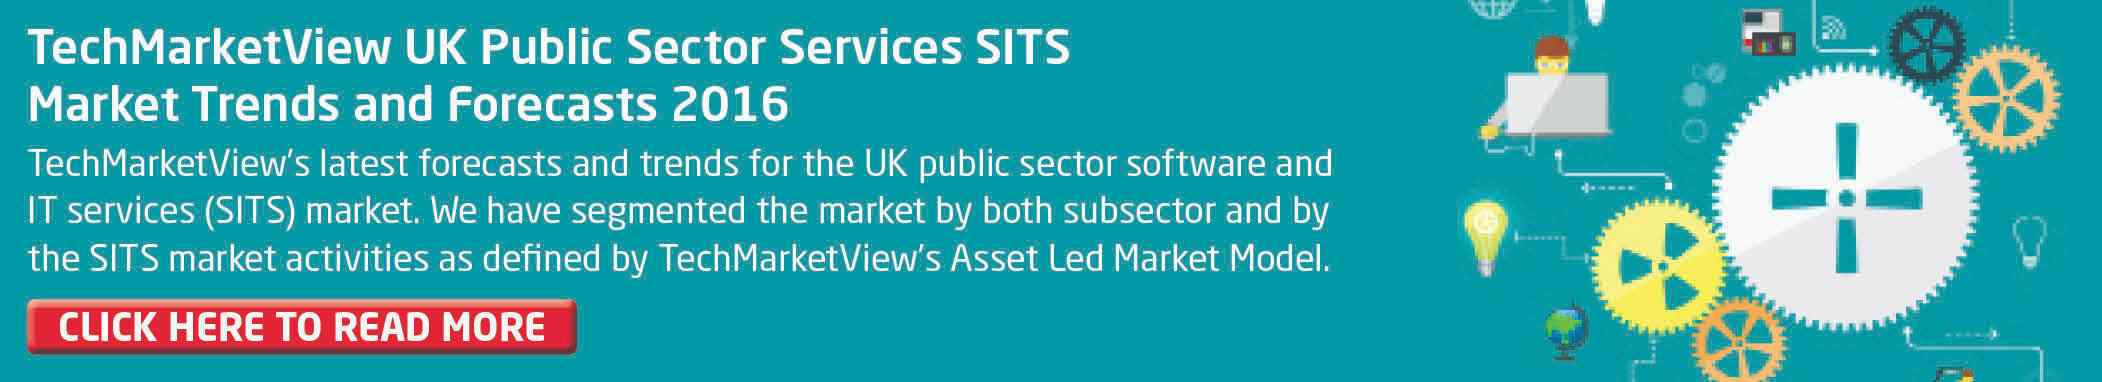 UK Public Sector Market Trends and Forecasts 2016